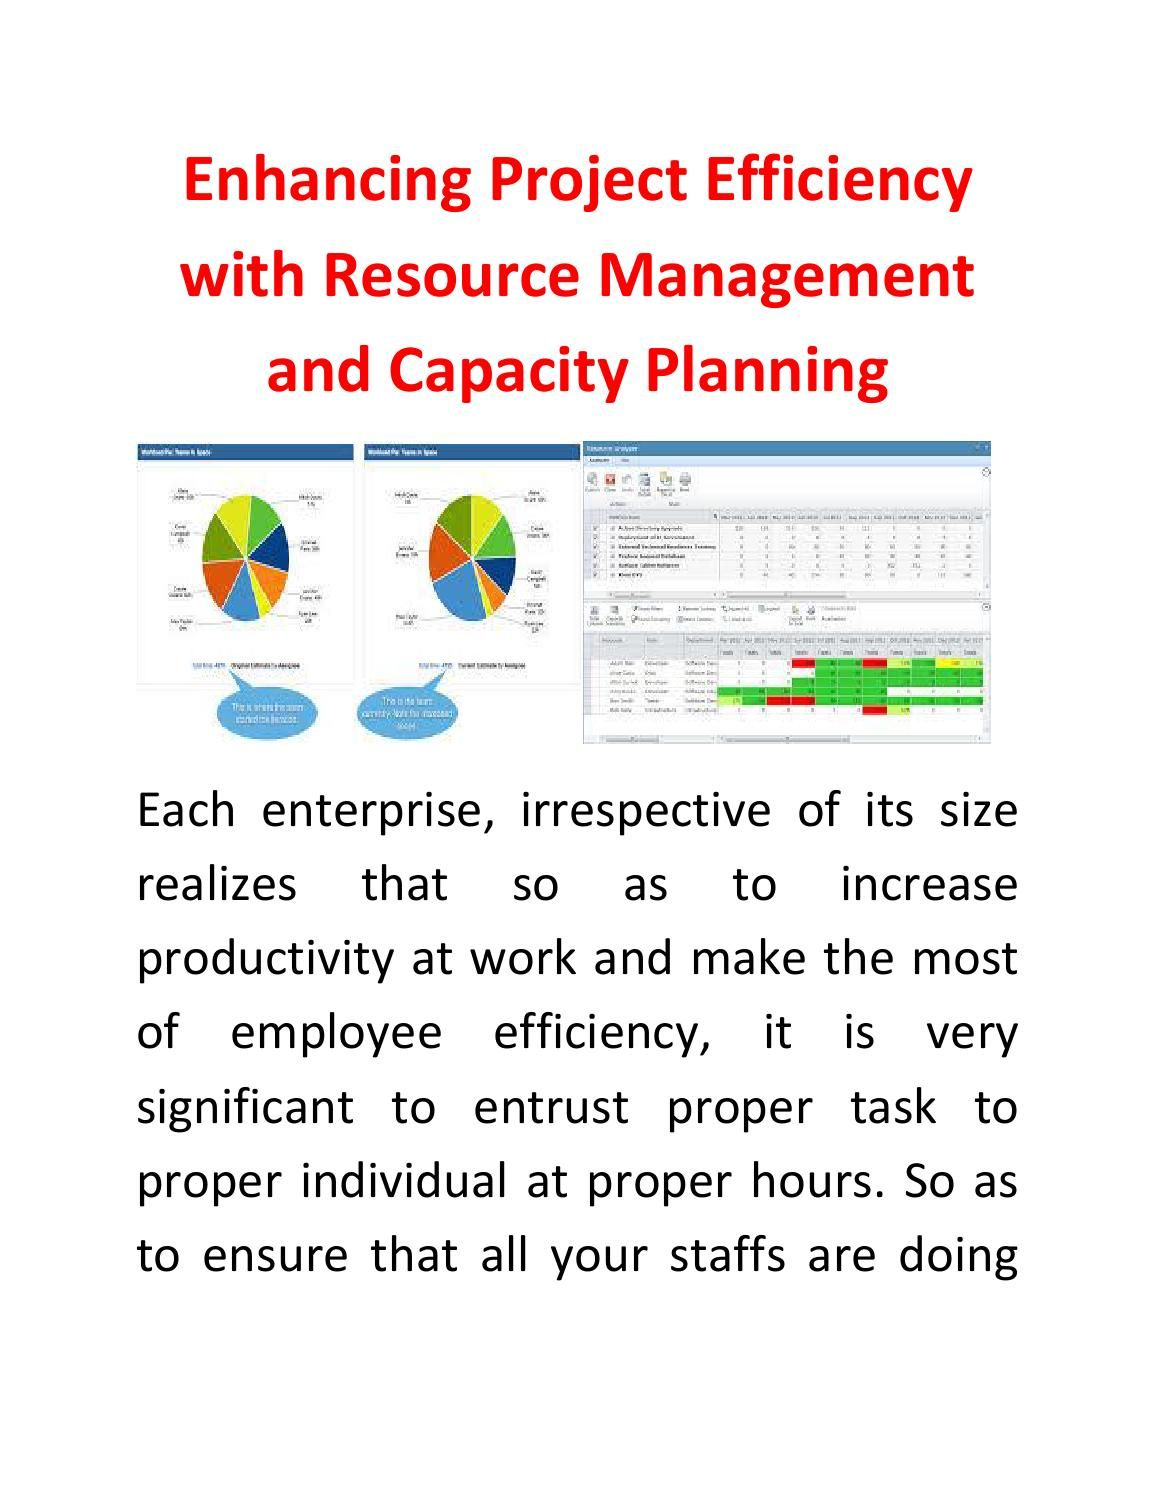 Manage Resource Enhancing Project Efficiency With Resource Management And Capacity